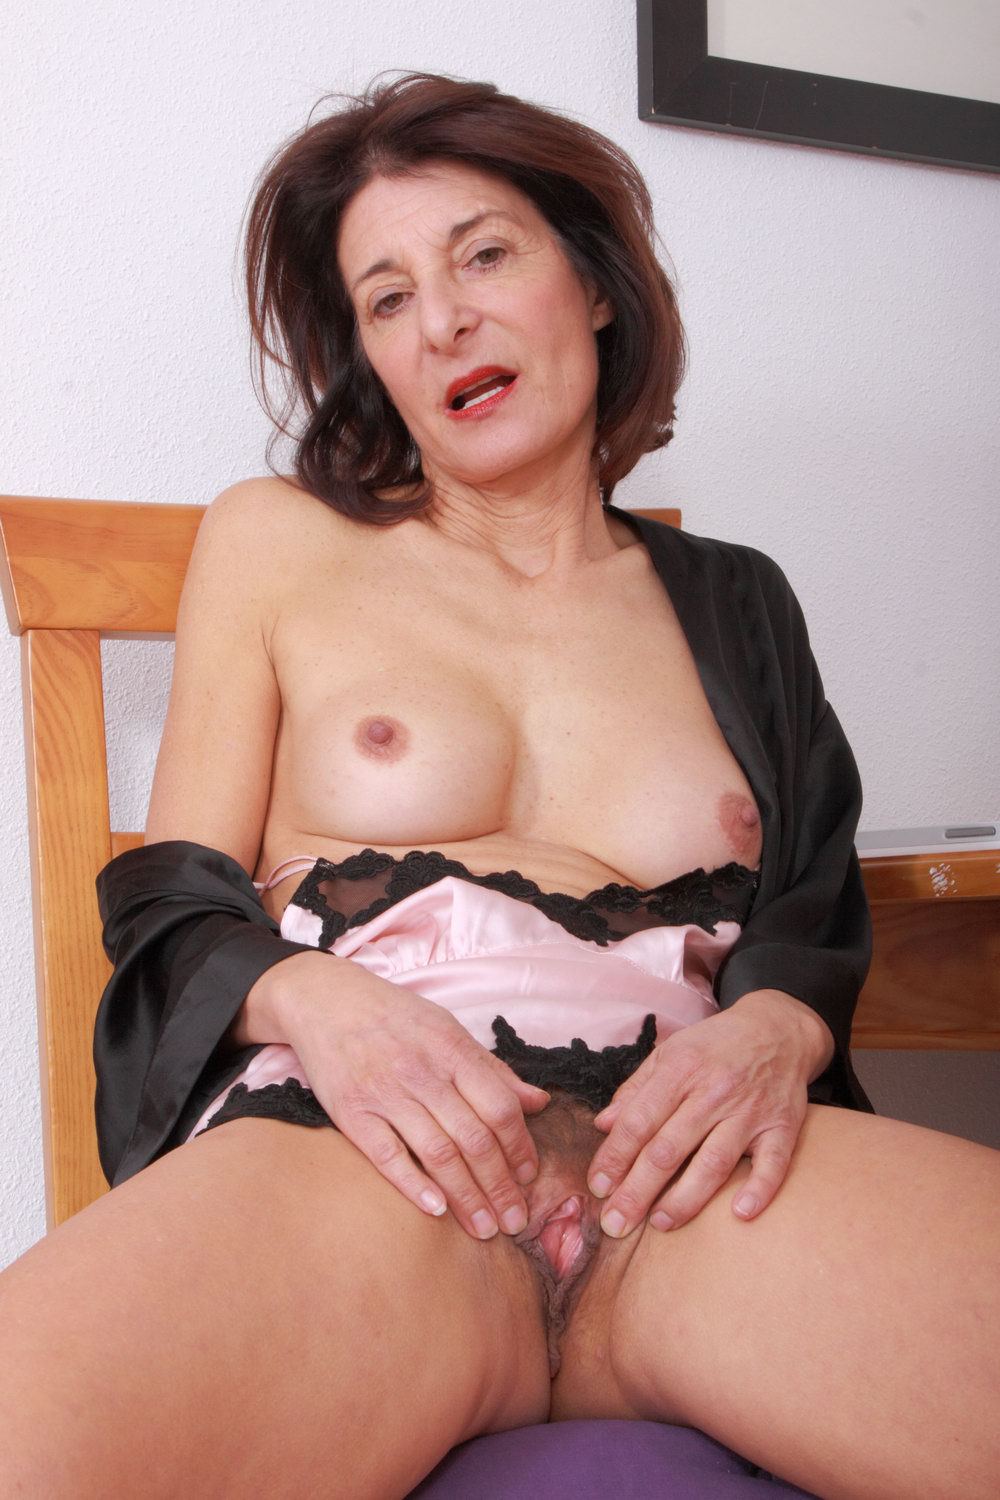 naked women 55 years old